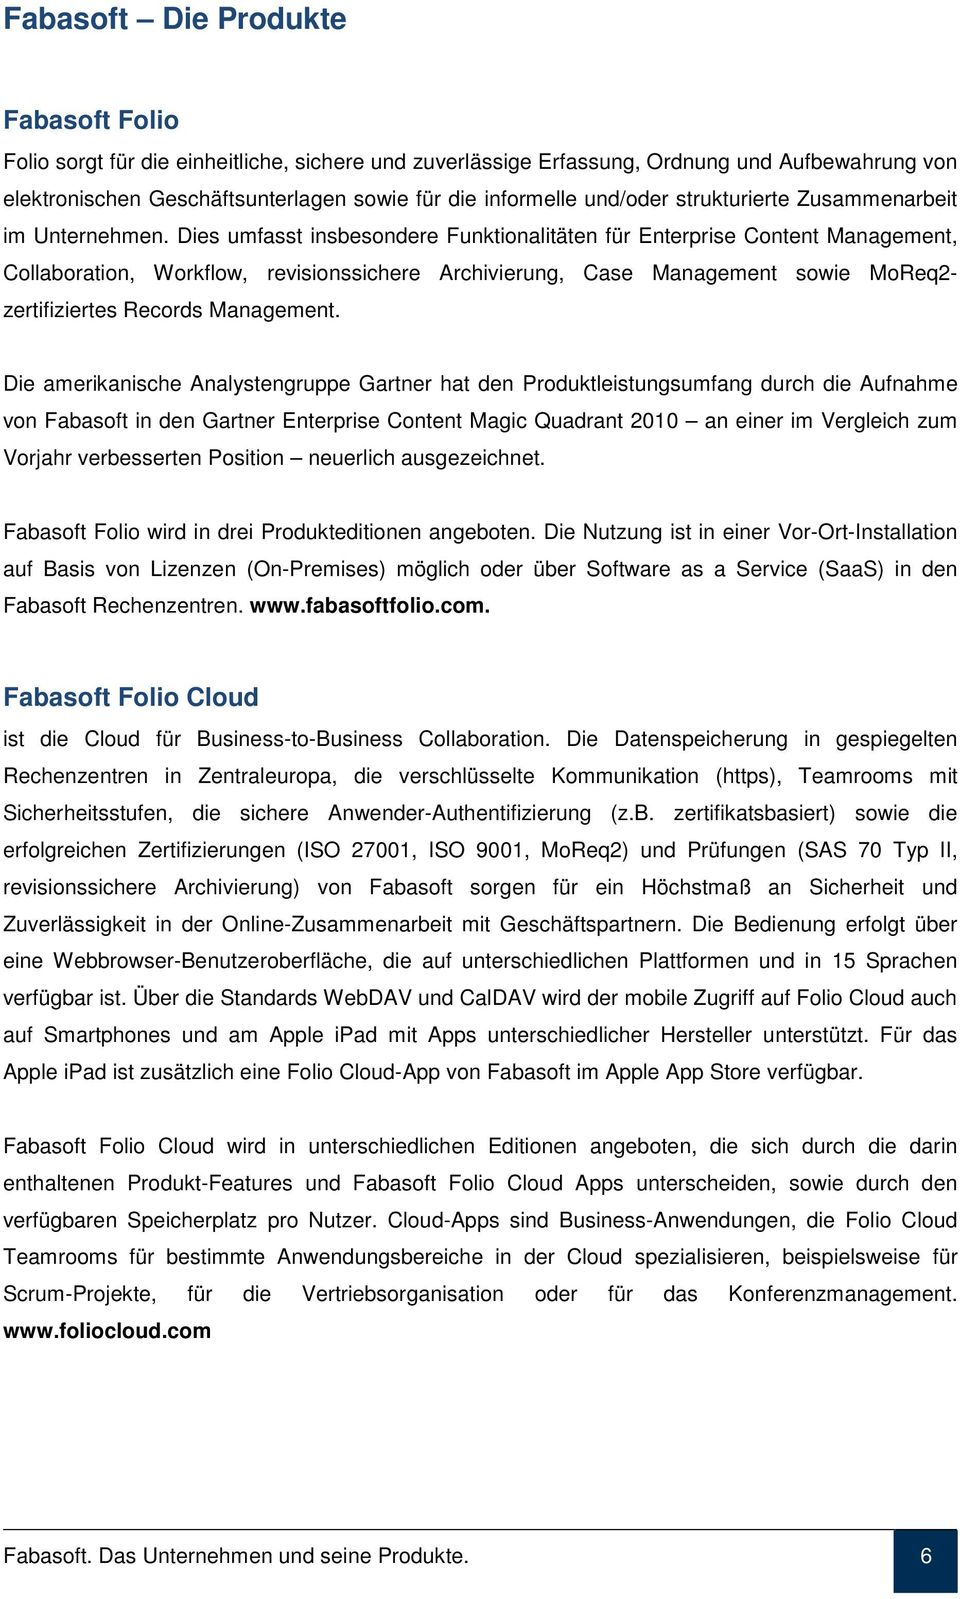 Dies umfasst insbesondere Funktionalitäten für Enterprise Content Management, Collaboration, Workflow, revisionssichere Archivierung, Case Management sowie MoReq2- zertifiziertes Records Management.